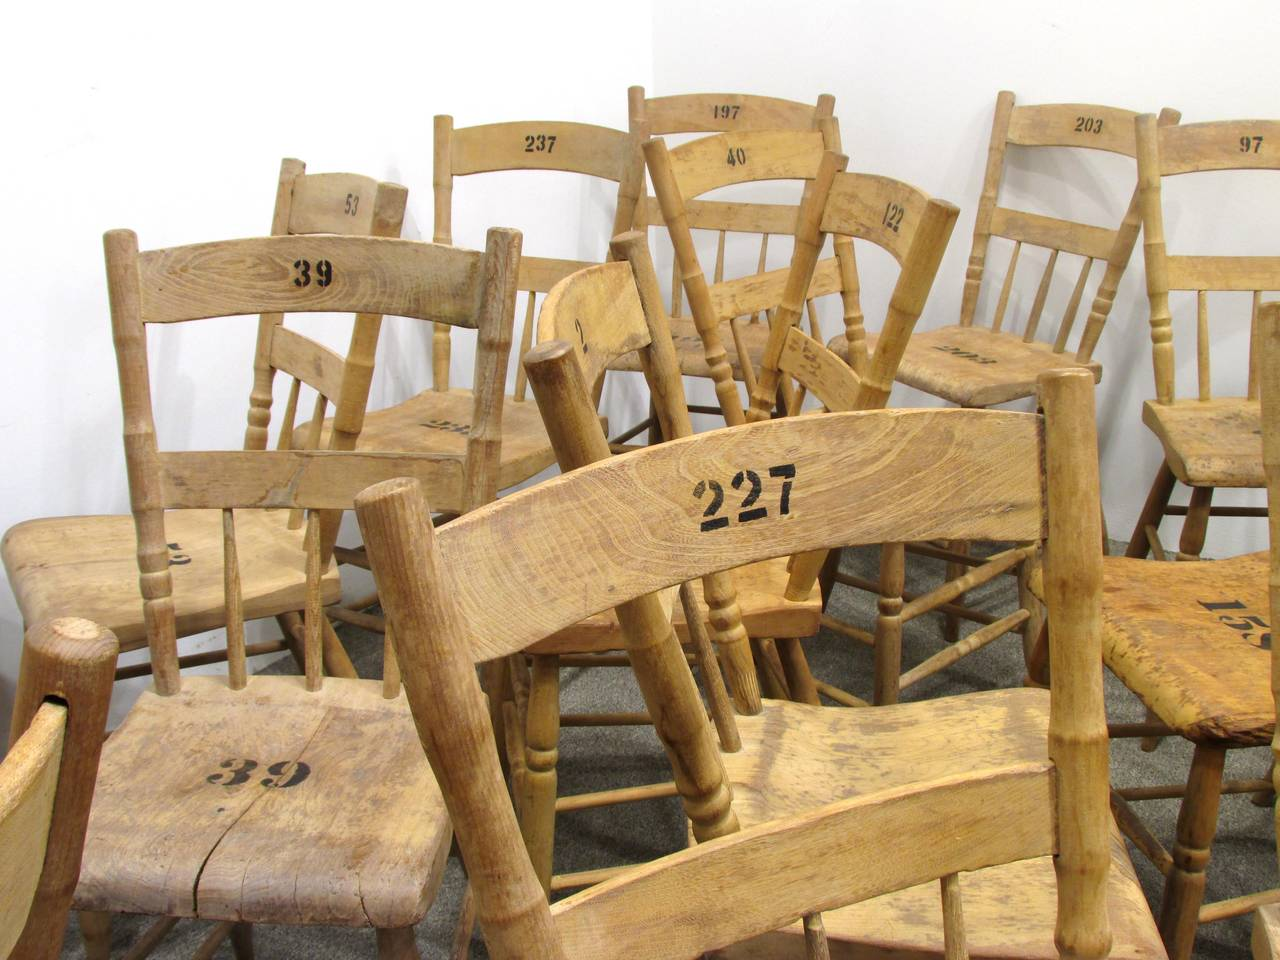 Grange Hall Chair 24 Available In Distressed Condition For Sale In High Point, NC